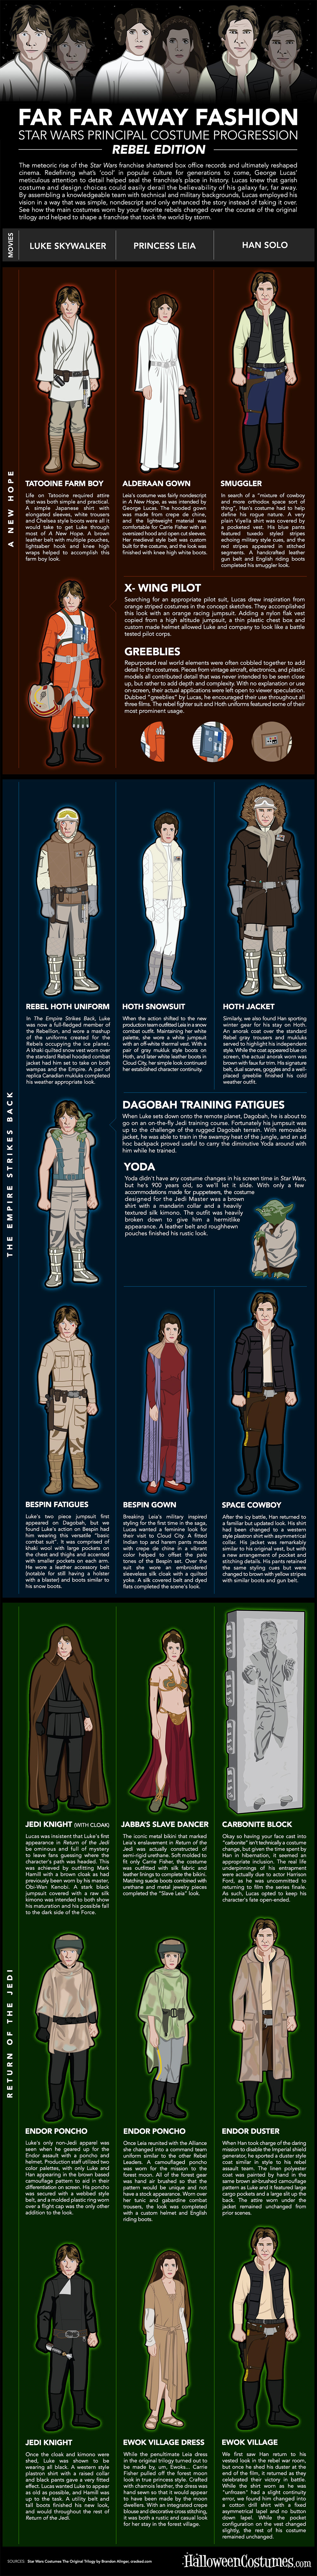 Star-Wars-Fashion-Infographic